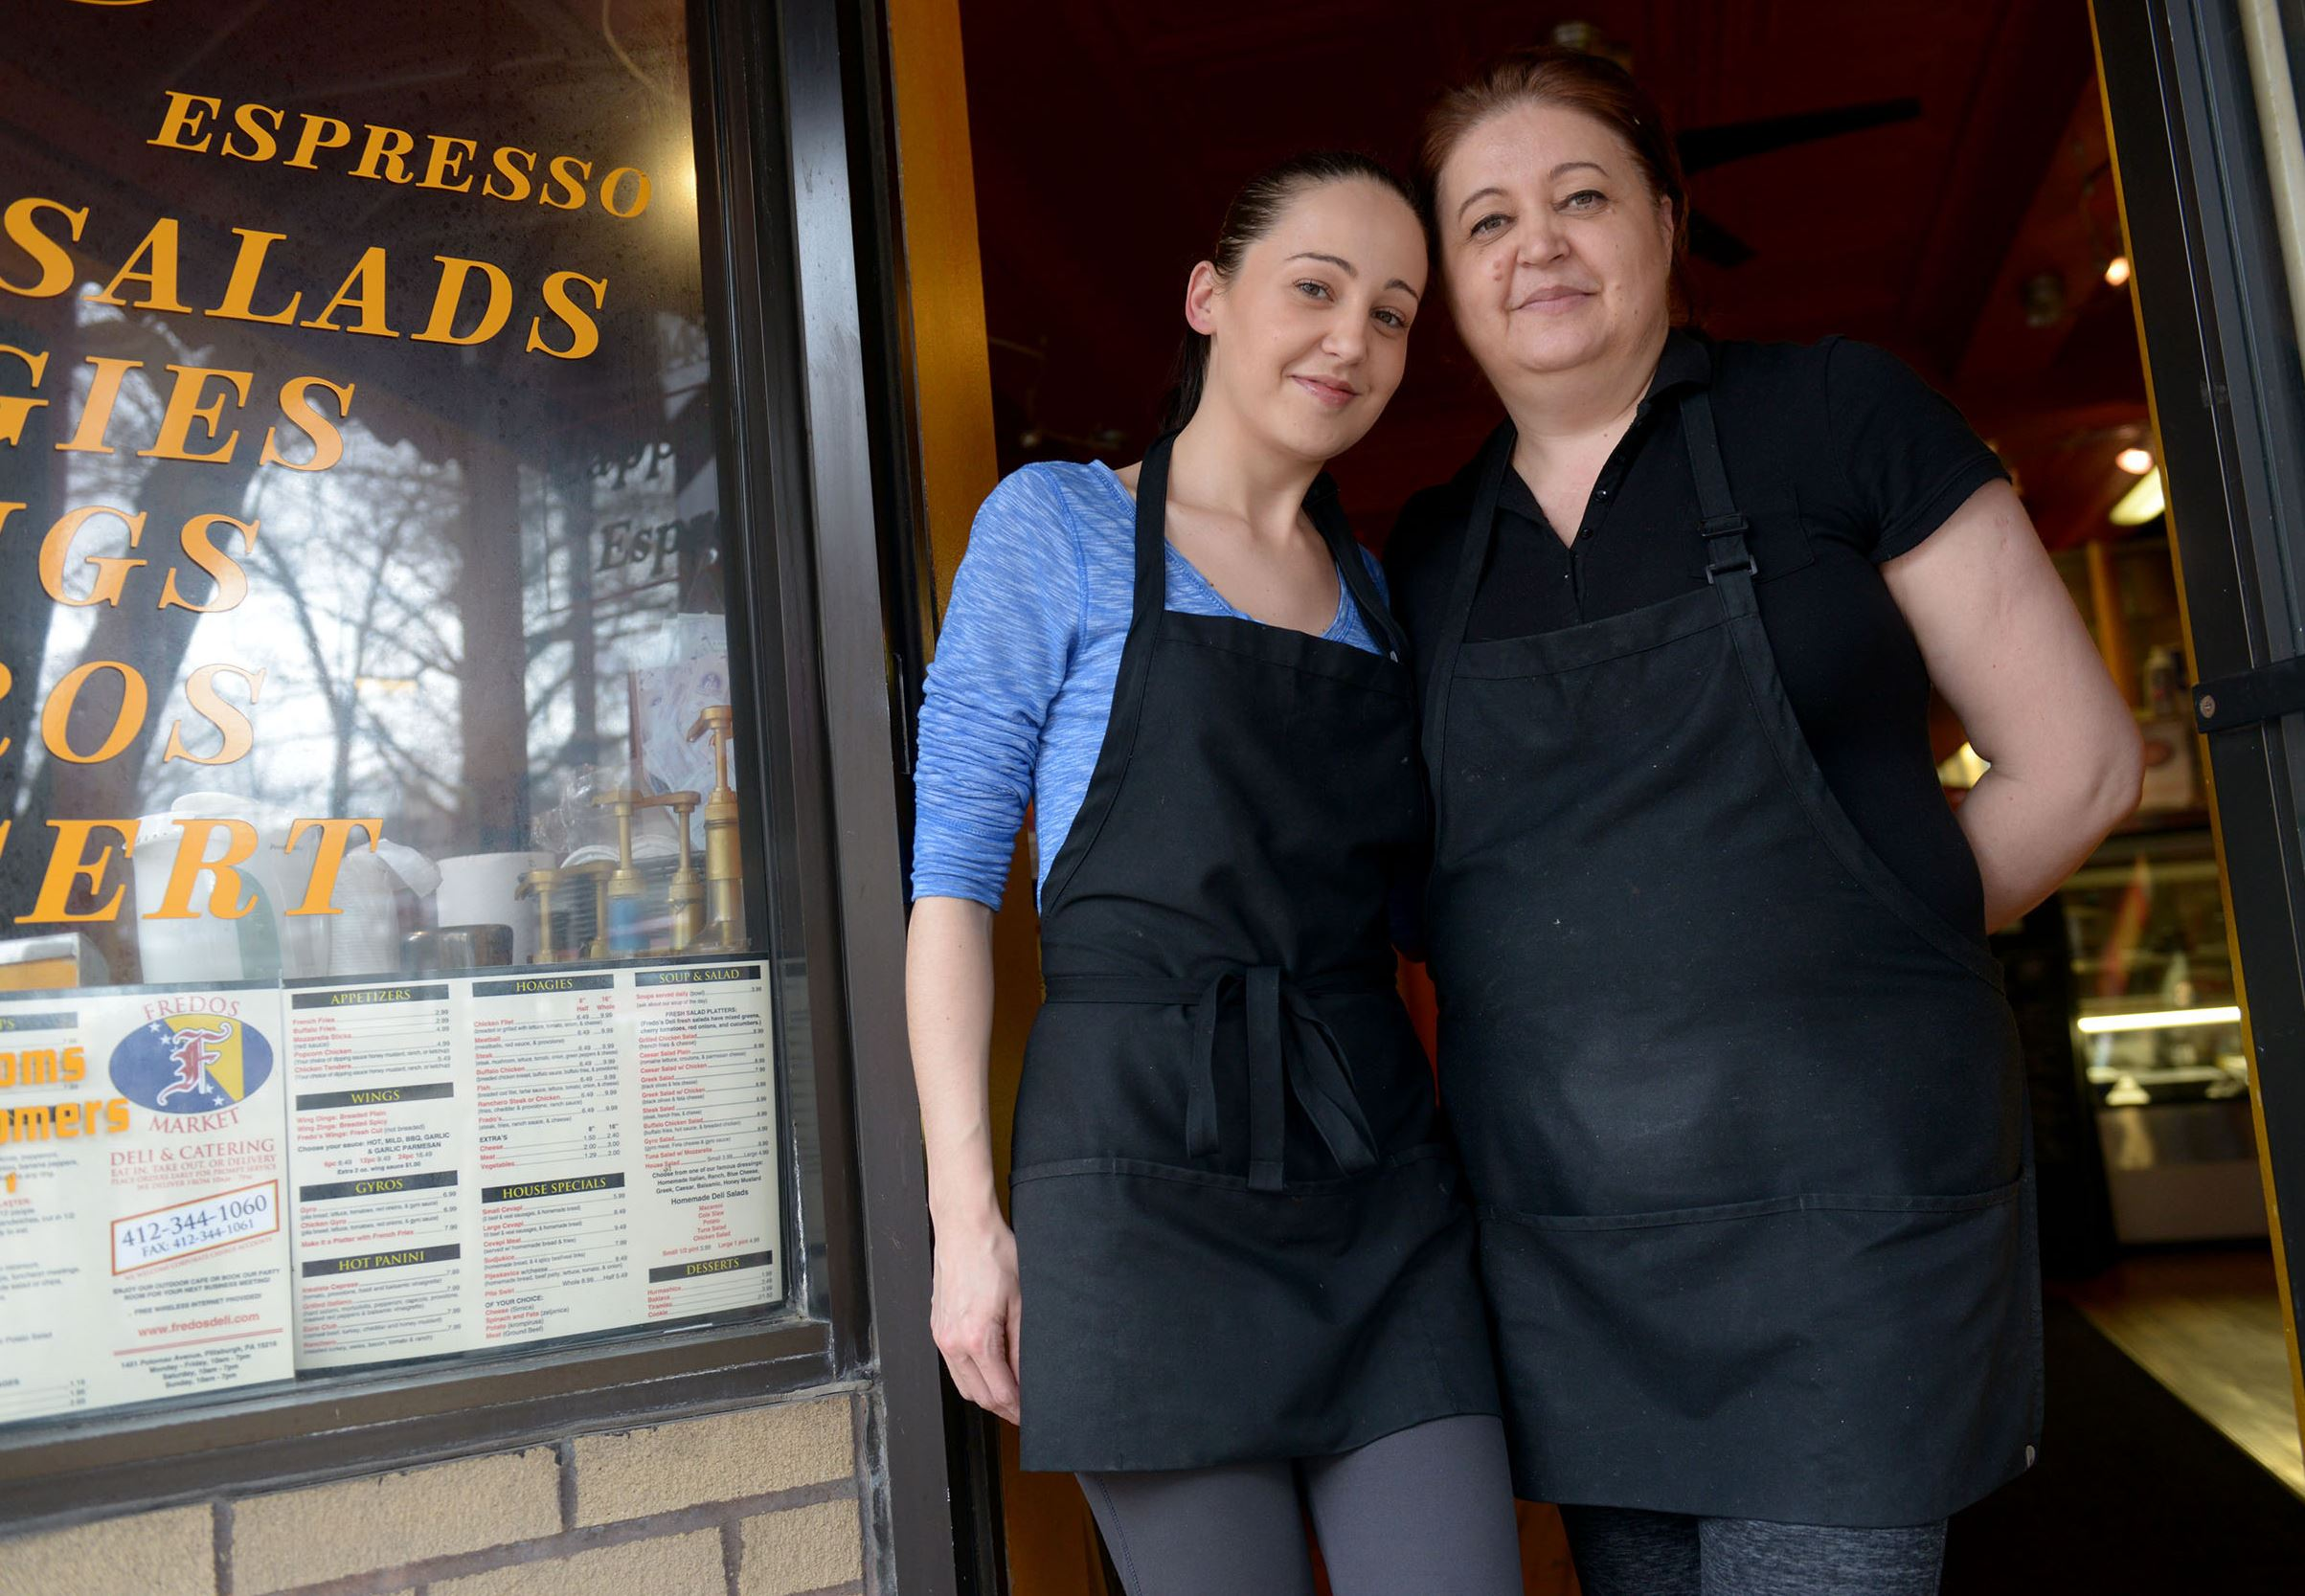 20150403ppTABLE0409WKNMAG8 Sandra Cehic and her mother, Mediha Cehic, are the owners of Fredos Market, Deli & Catering in Dormont.